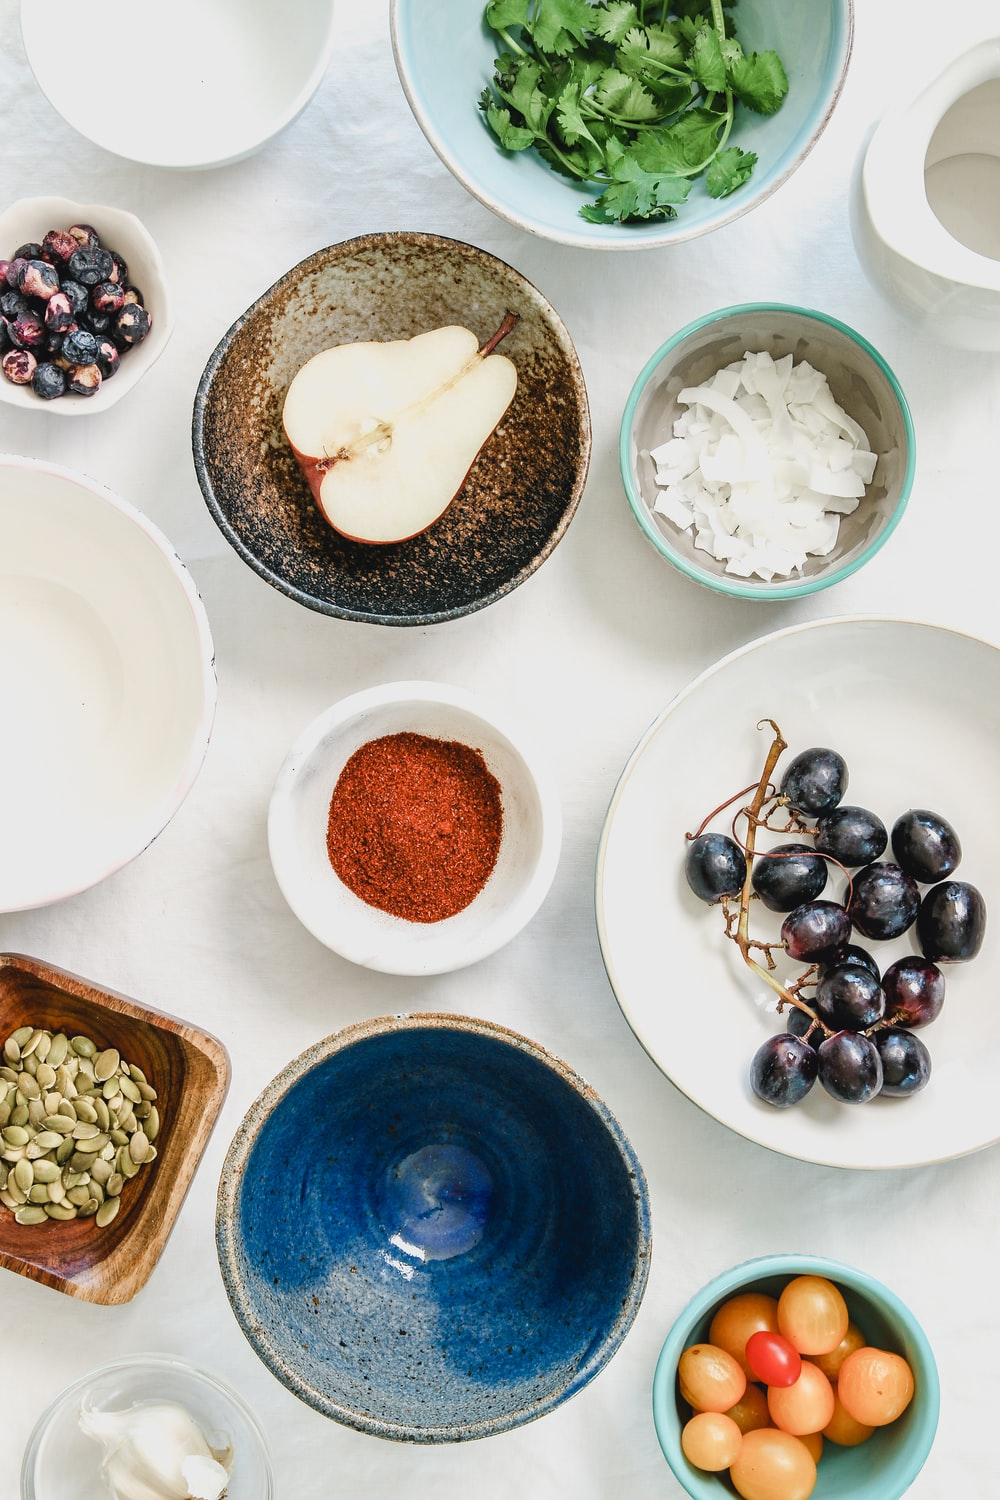 An overhead shot of fruits, seeds and spices in bowls